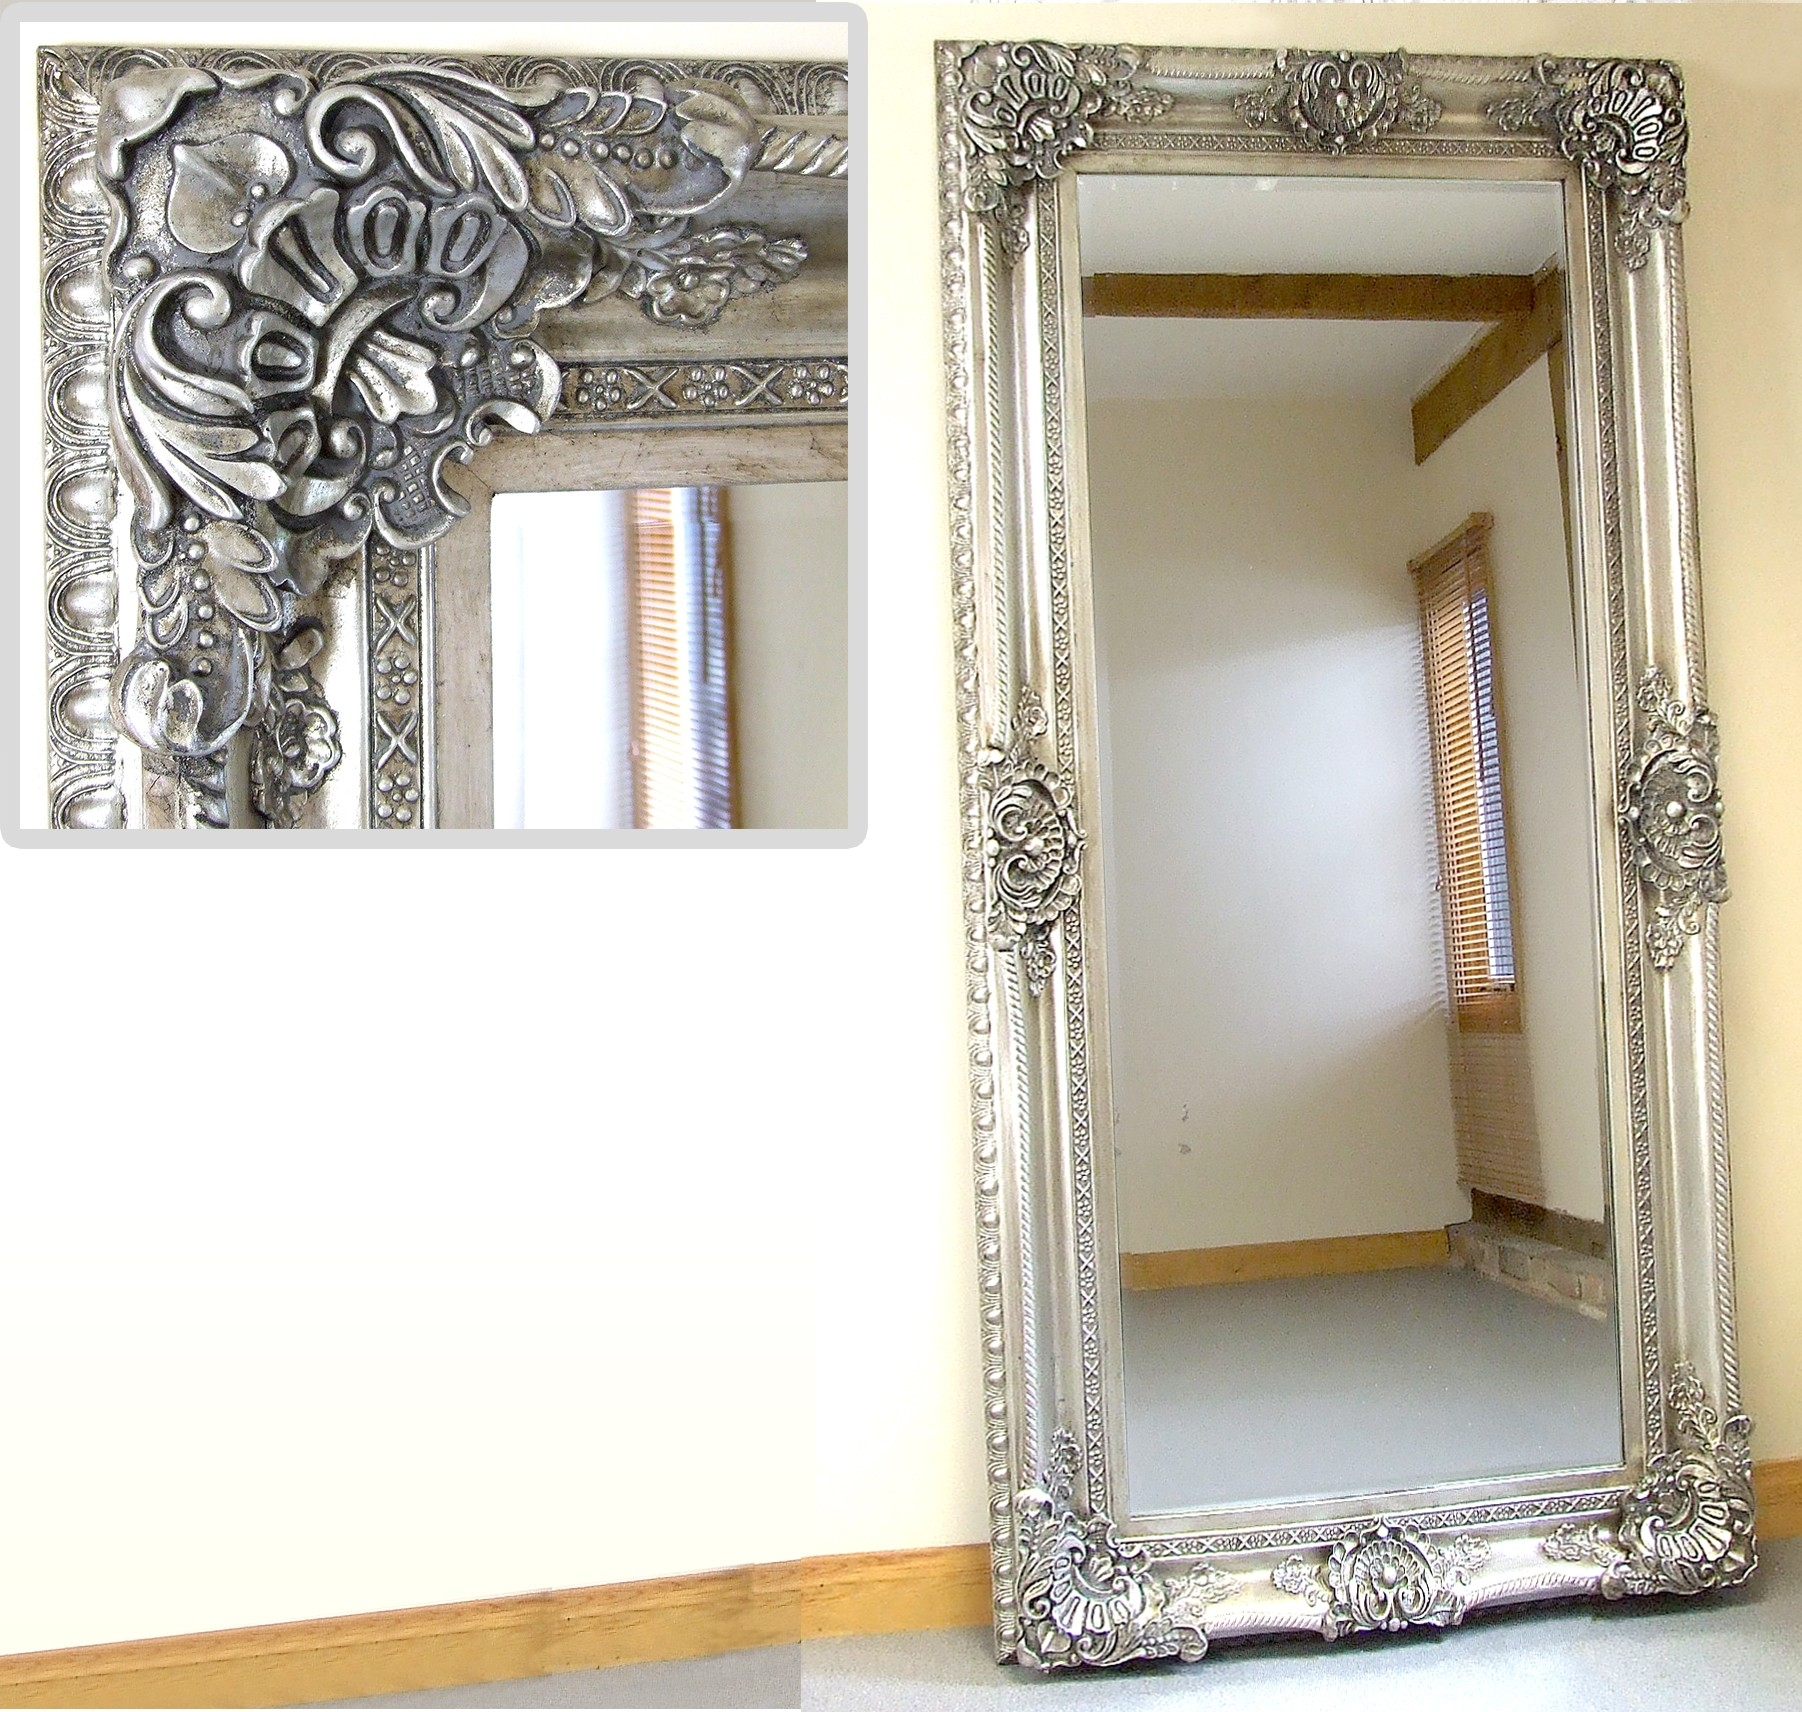 Ornate Full Length Wall Mirror Mirror Design Ideas Pertaining To Large Ornate Mirrors For Wall (Image 13 of 15)